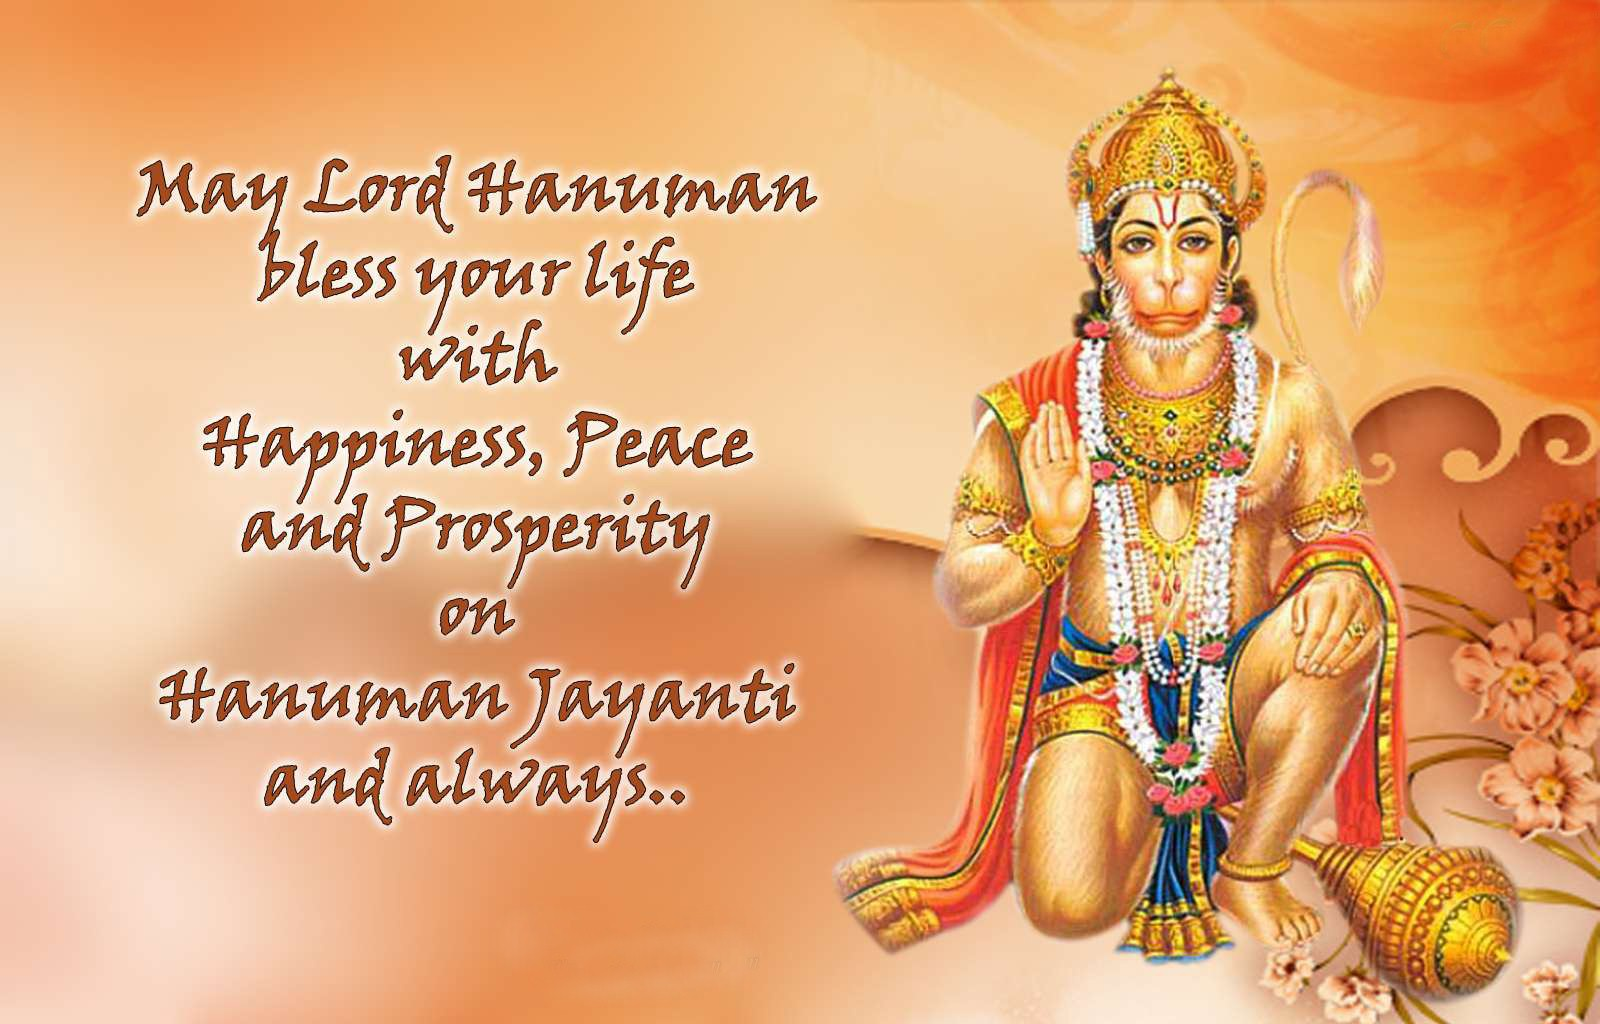 60+ Hanuman Images - The Most Unique and Beautiful Collection!